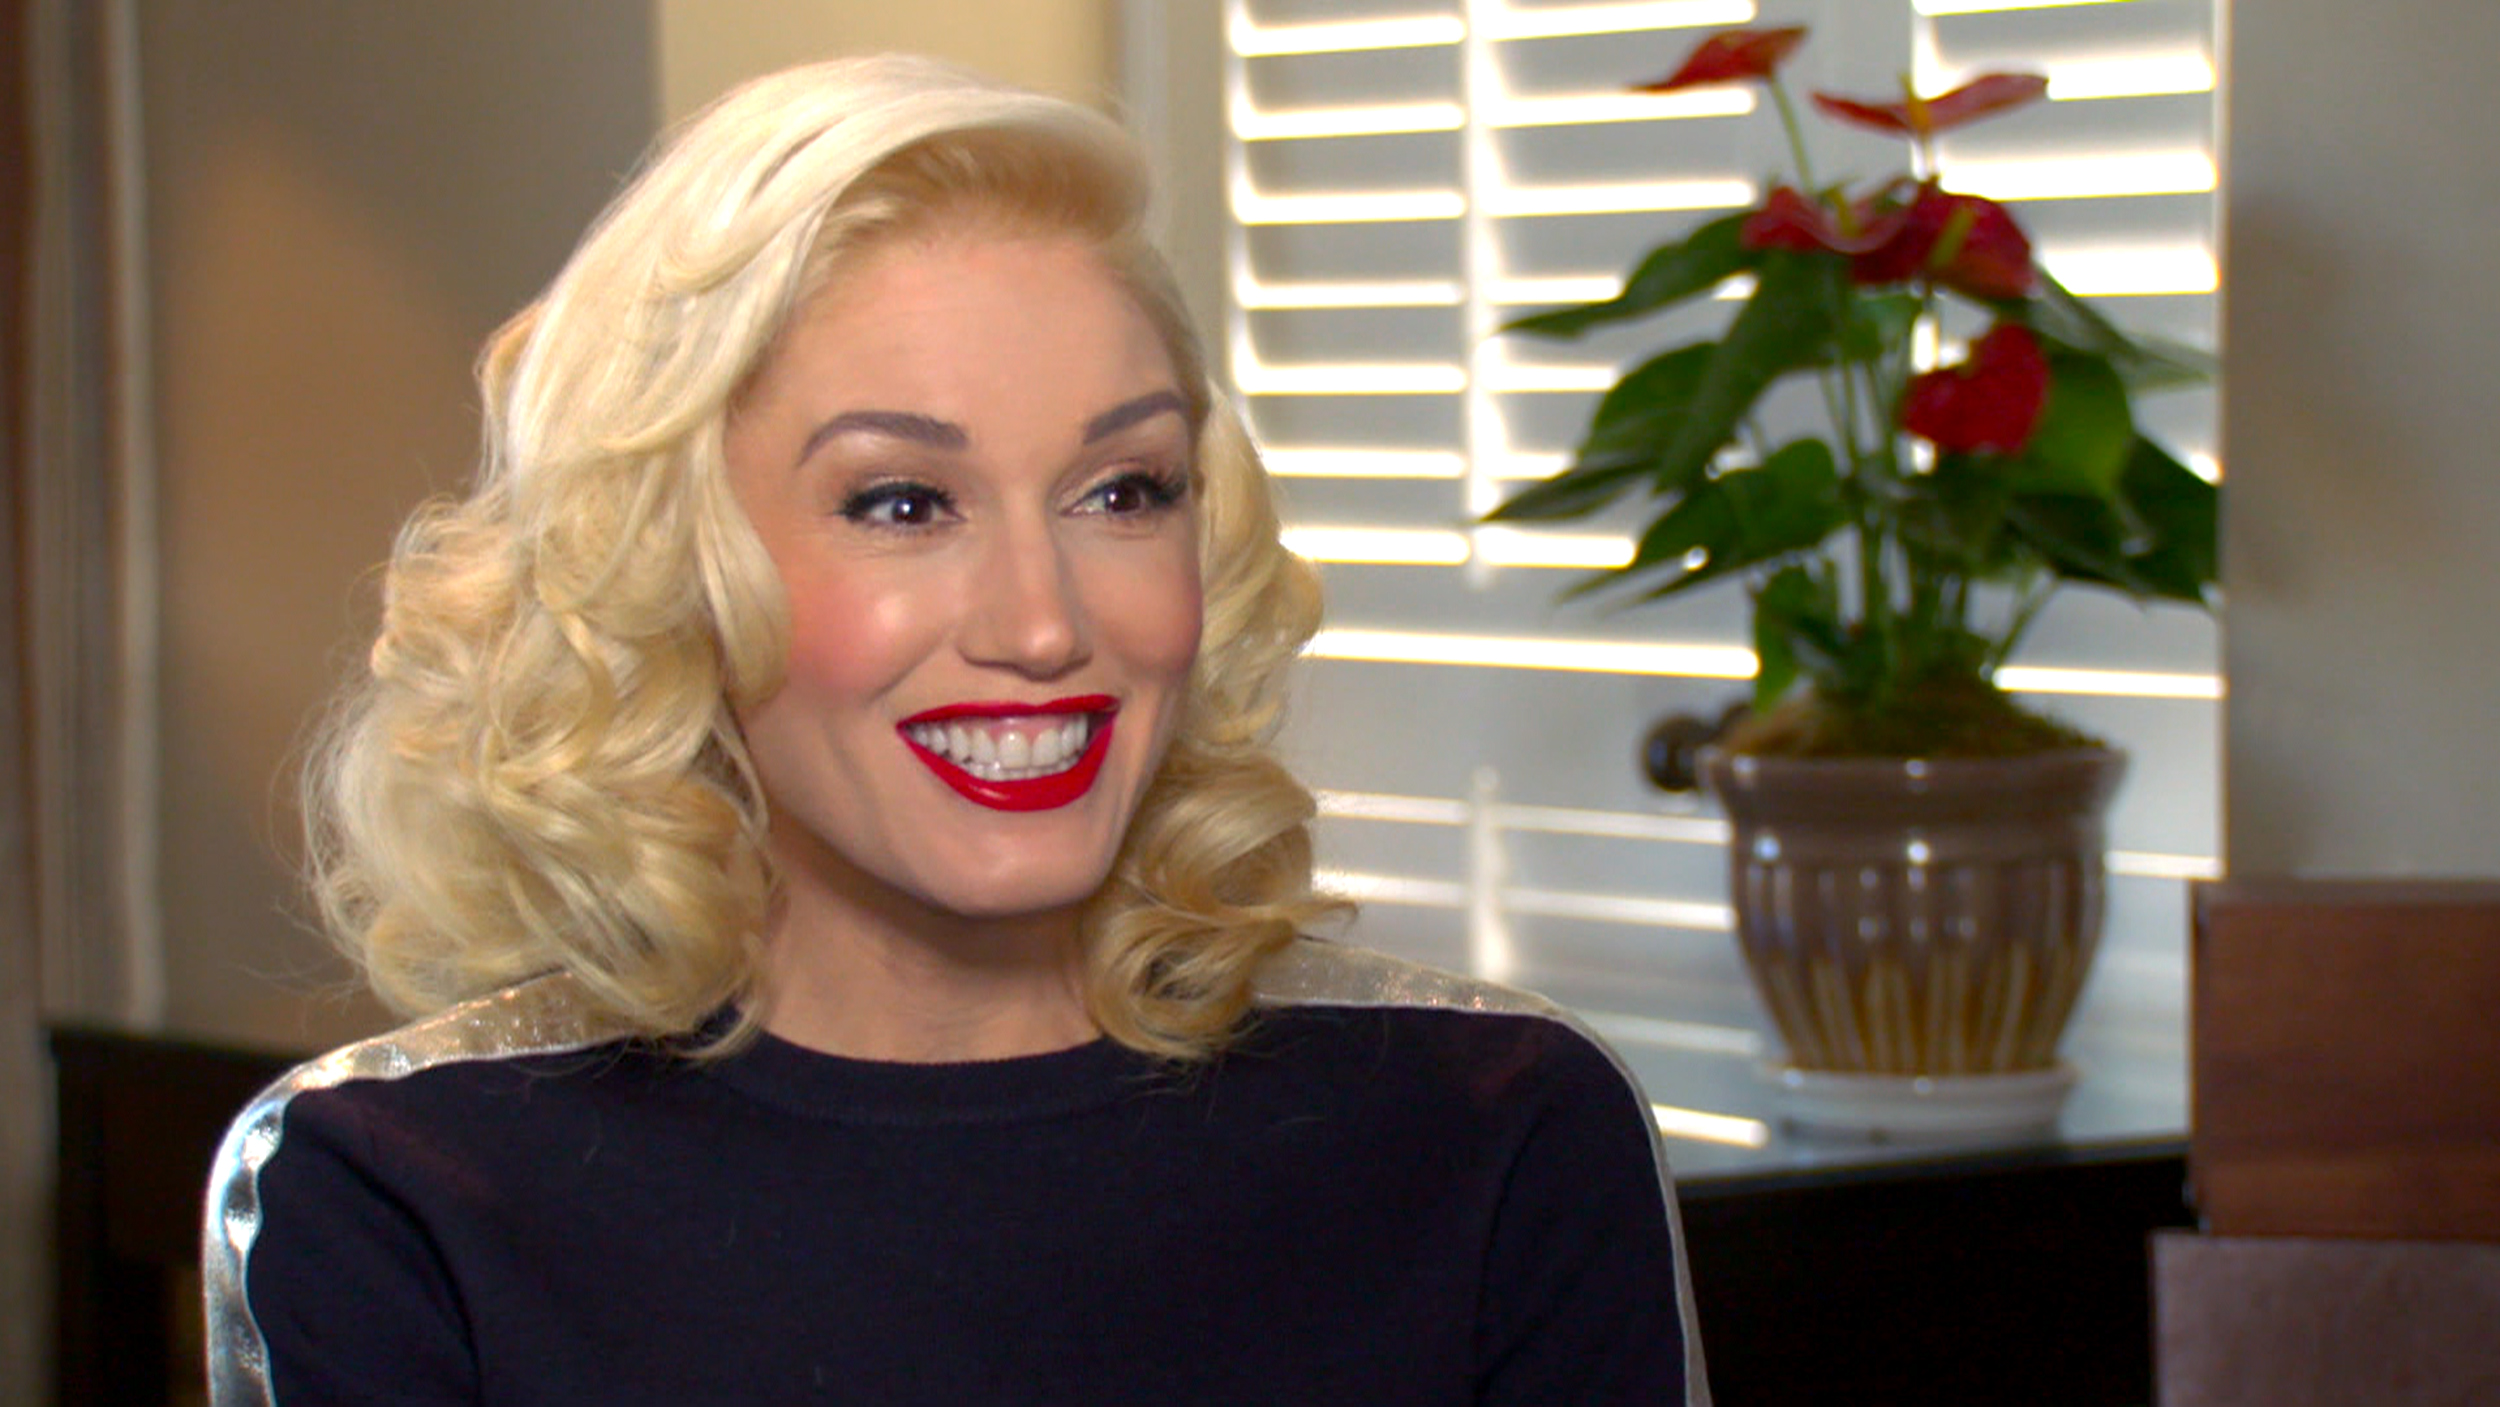 Gwen stefani latest news images and photos crypticimages sciox Gallery